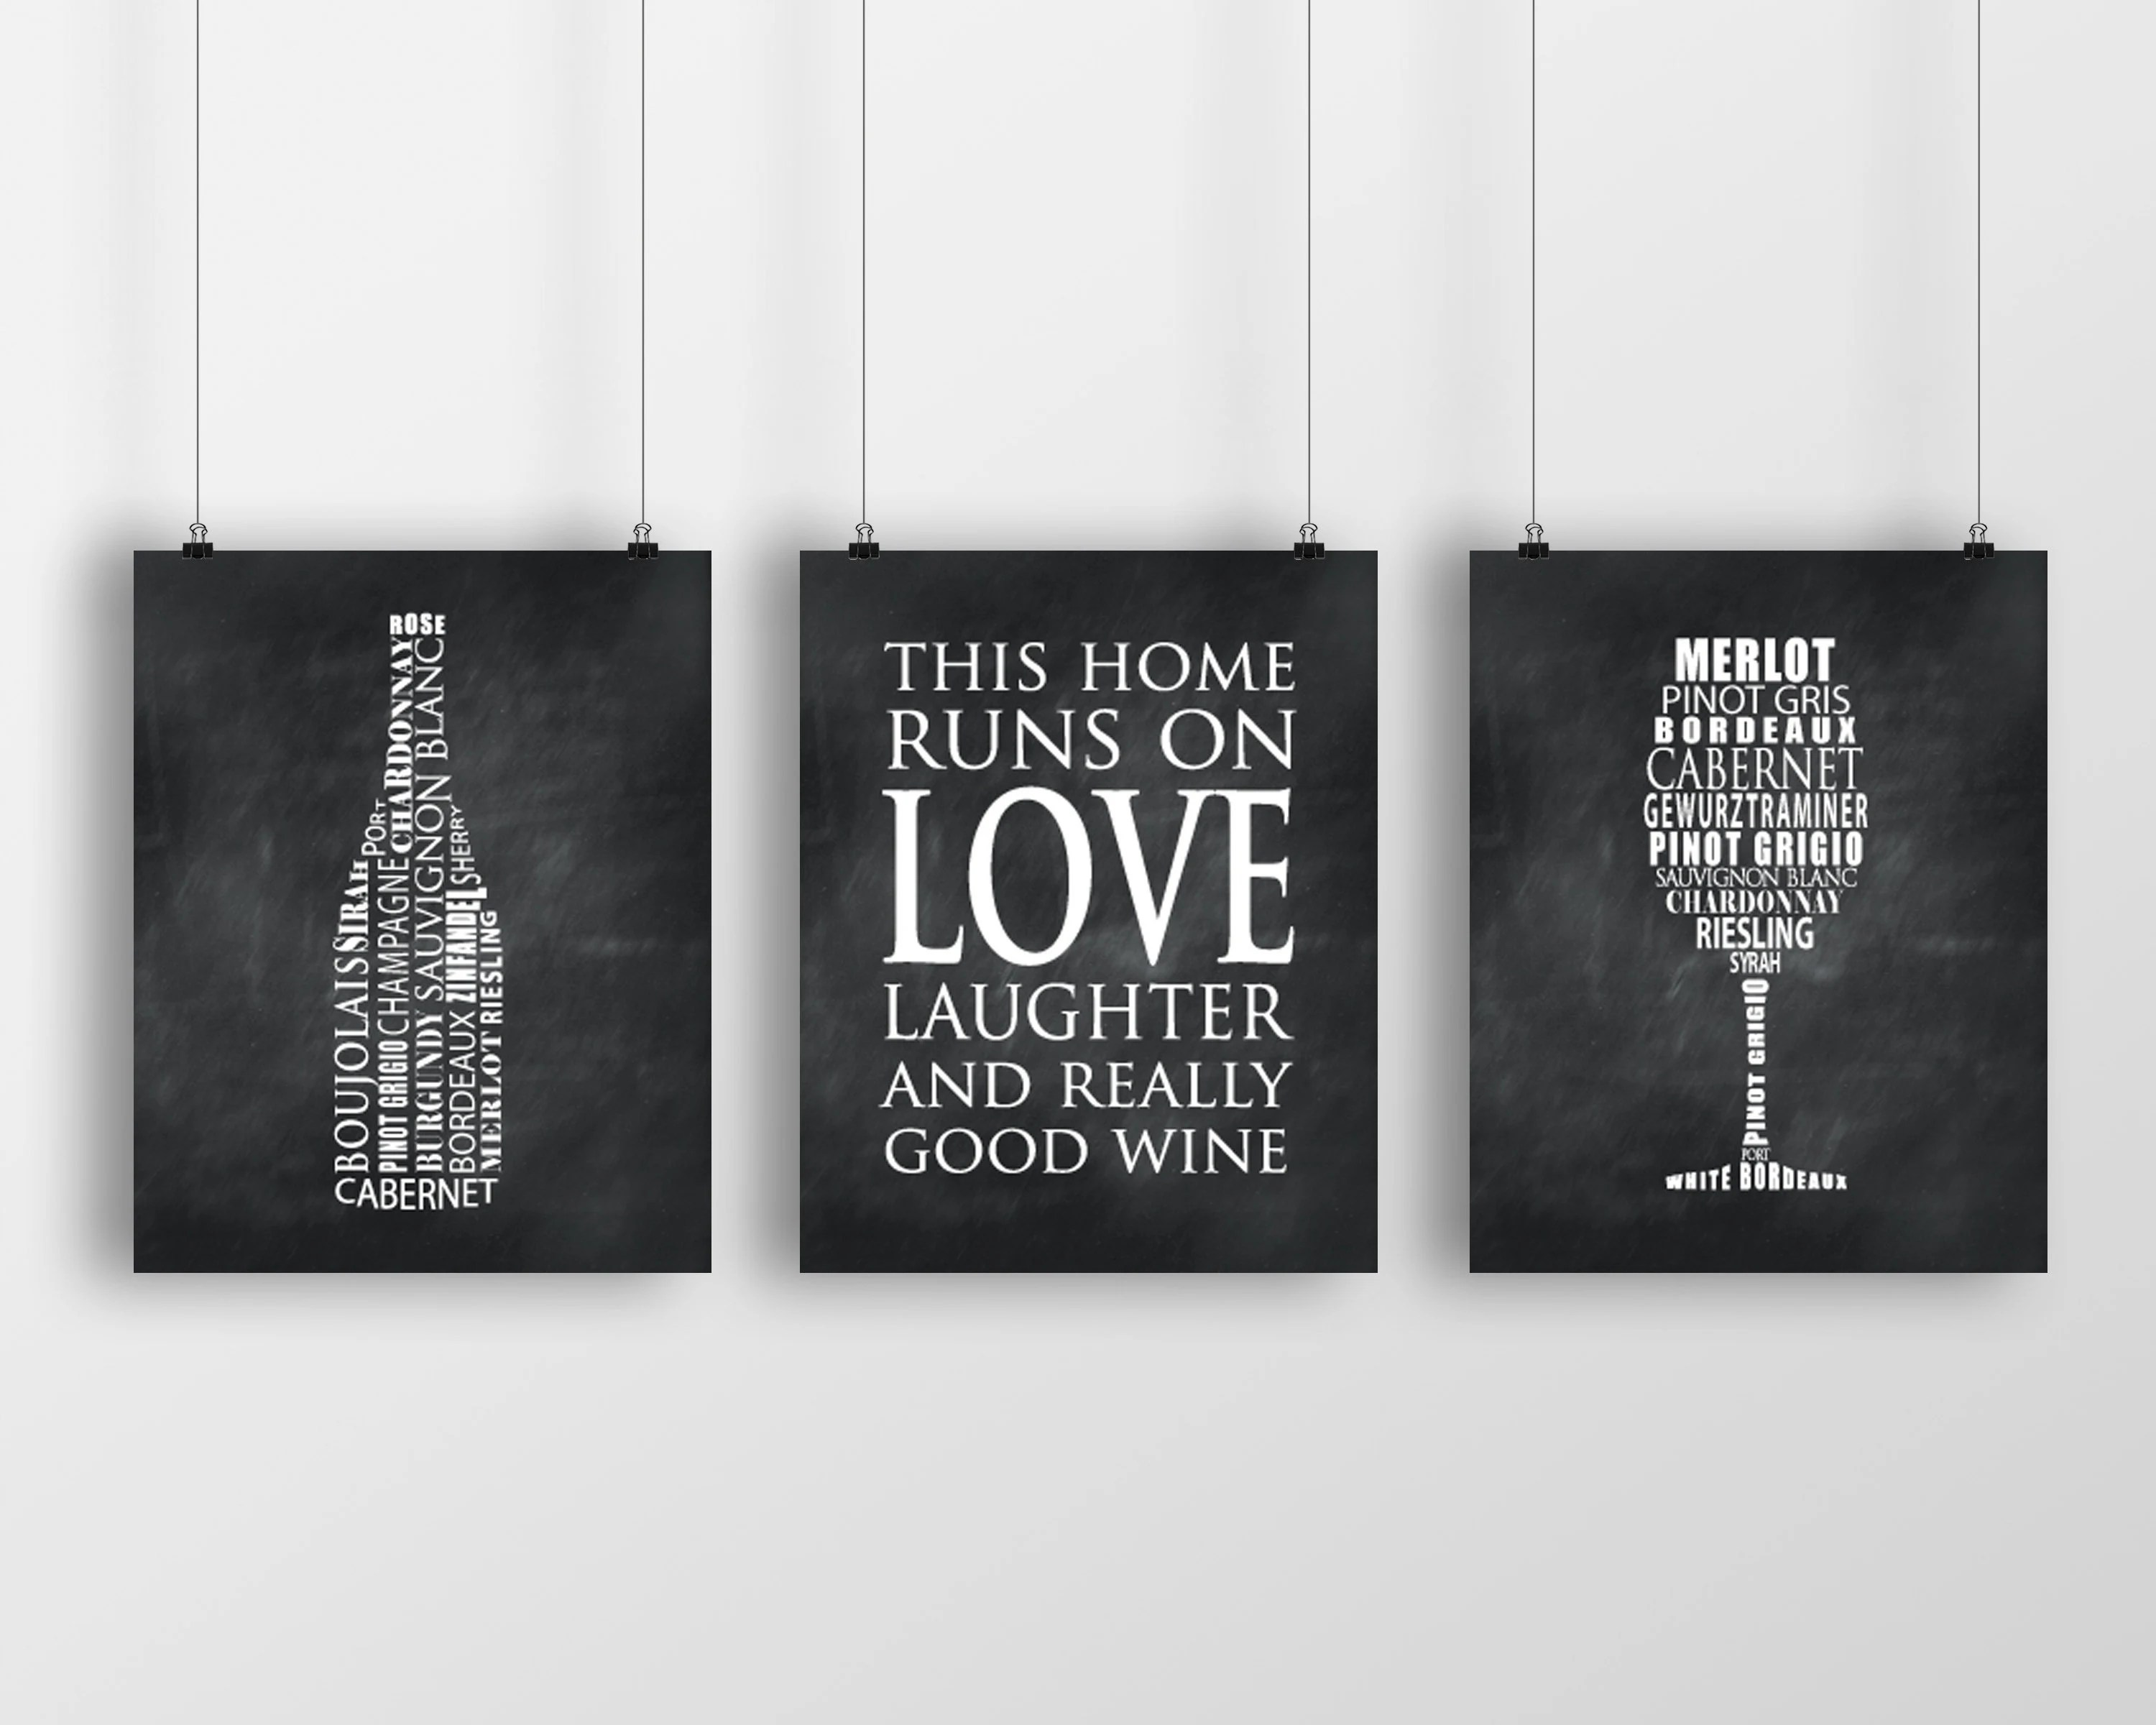 11 X 20 Kitchen Design Wine Typography Prints Kitchen Wall Art This House Runs On Love Laughter And Really Good Wine Wine Glass Wine Bottle Wall Decor